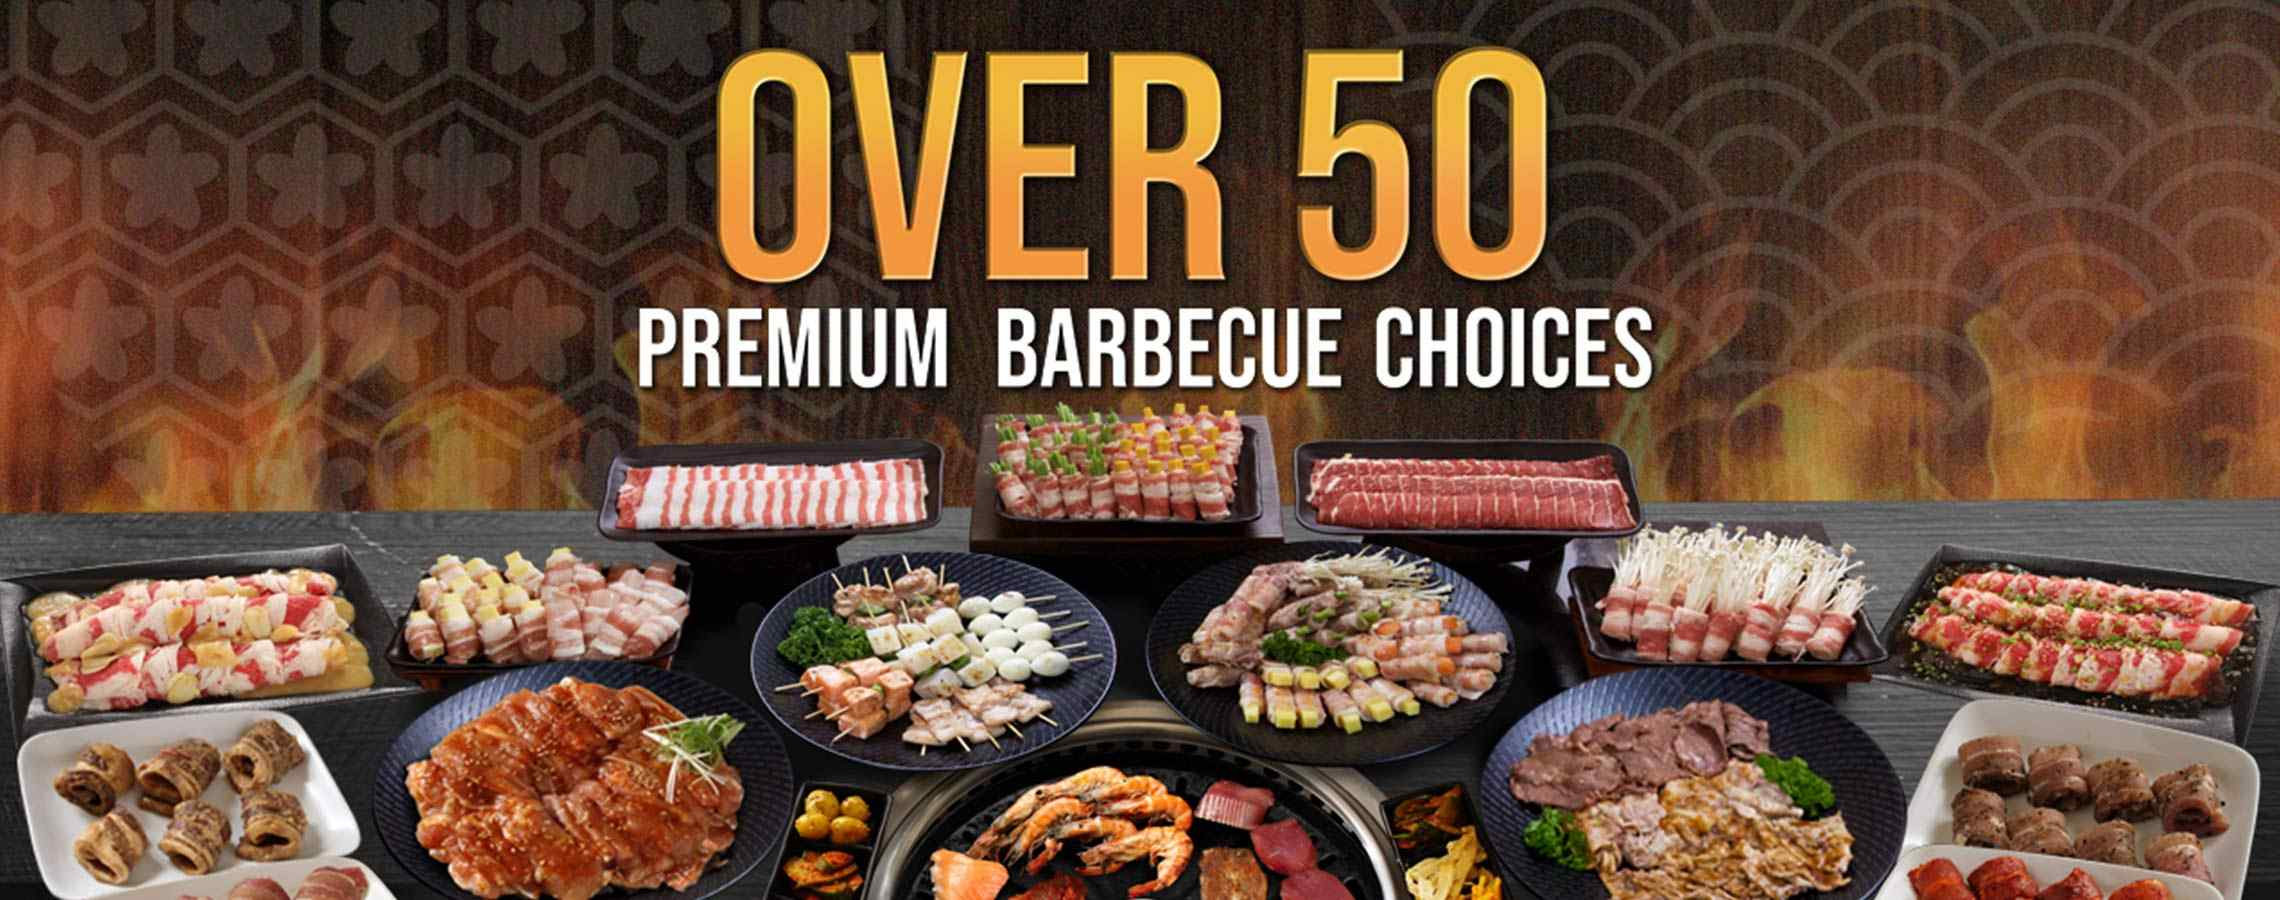 Over 50 Premium Barbecue Choices